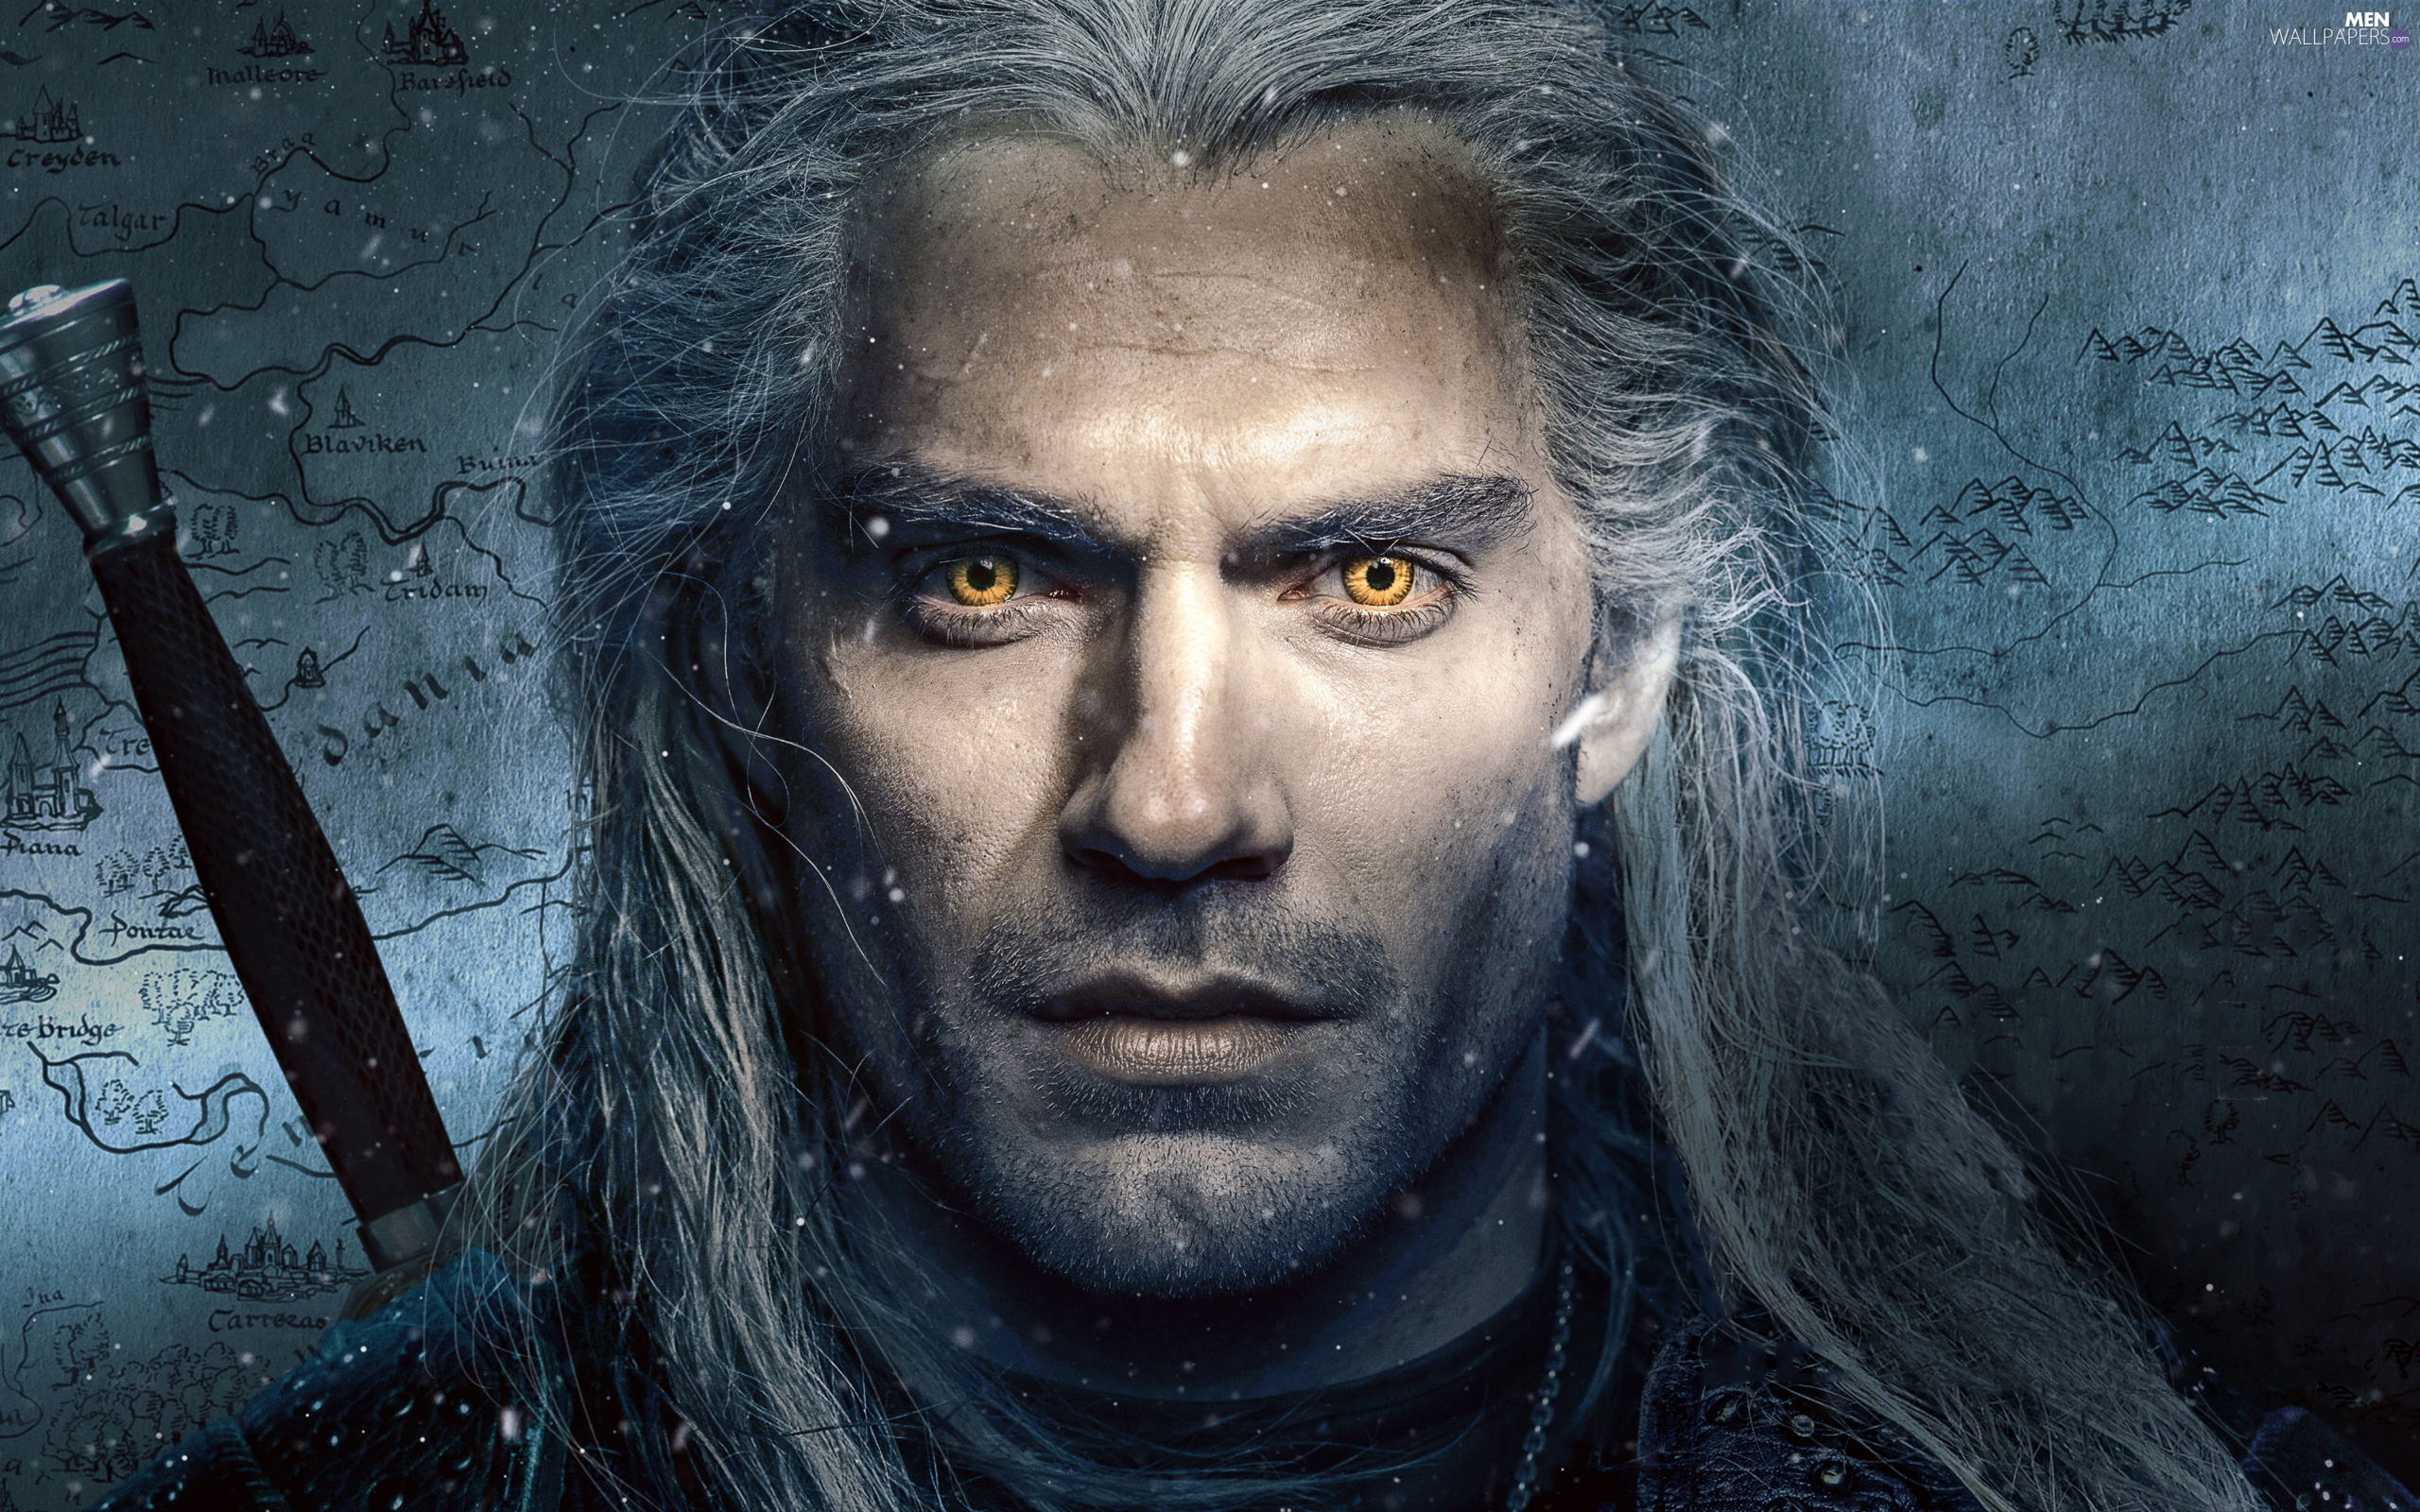 the witcher, series, Henry Cavill, Geralt of Rivia, actor, The Witcher